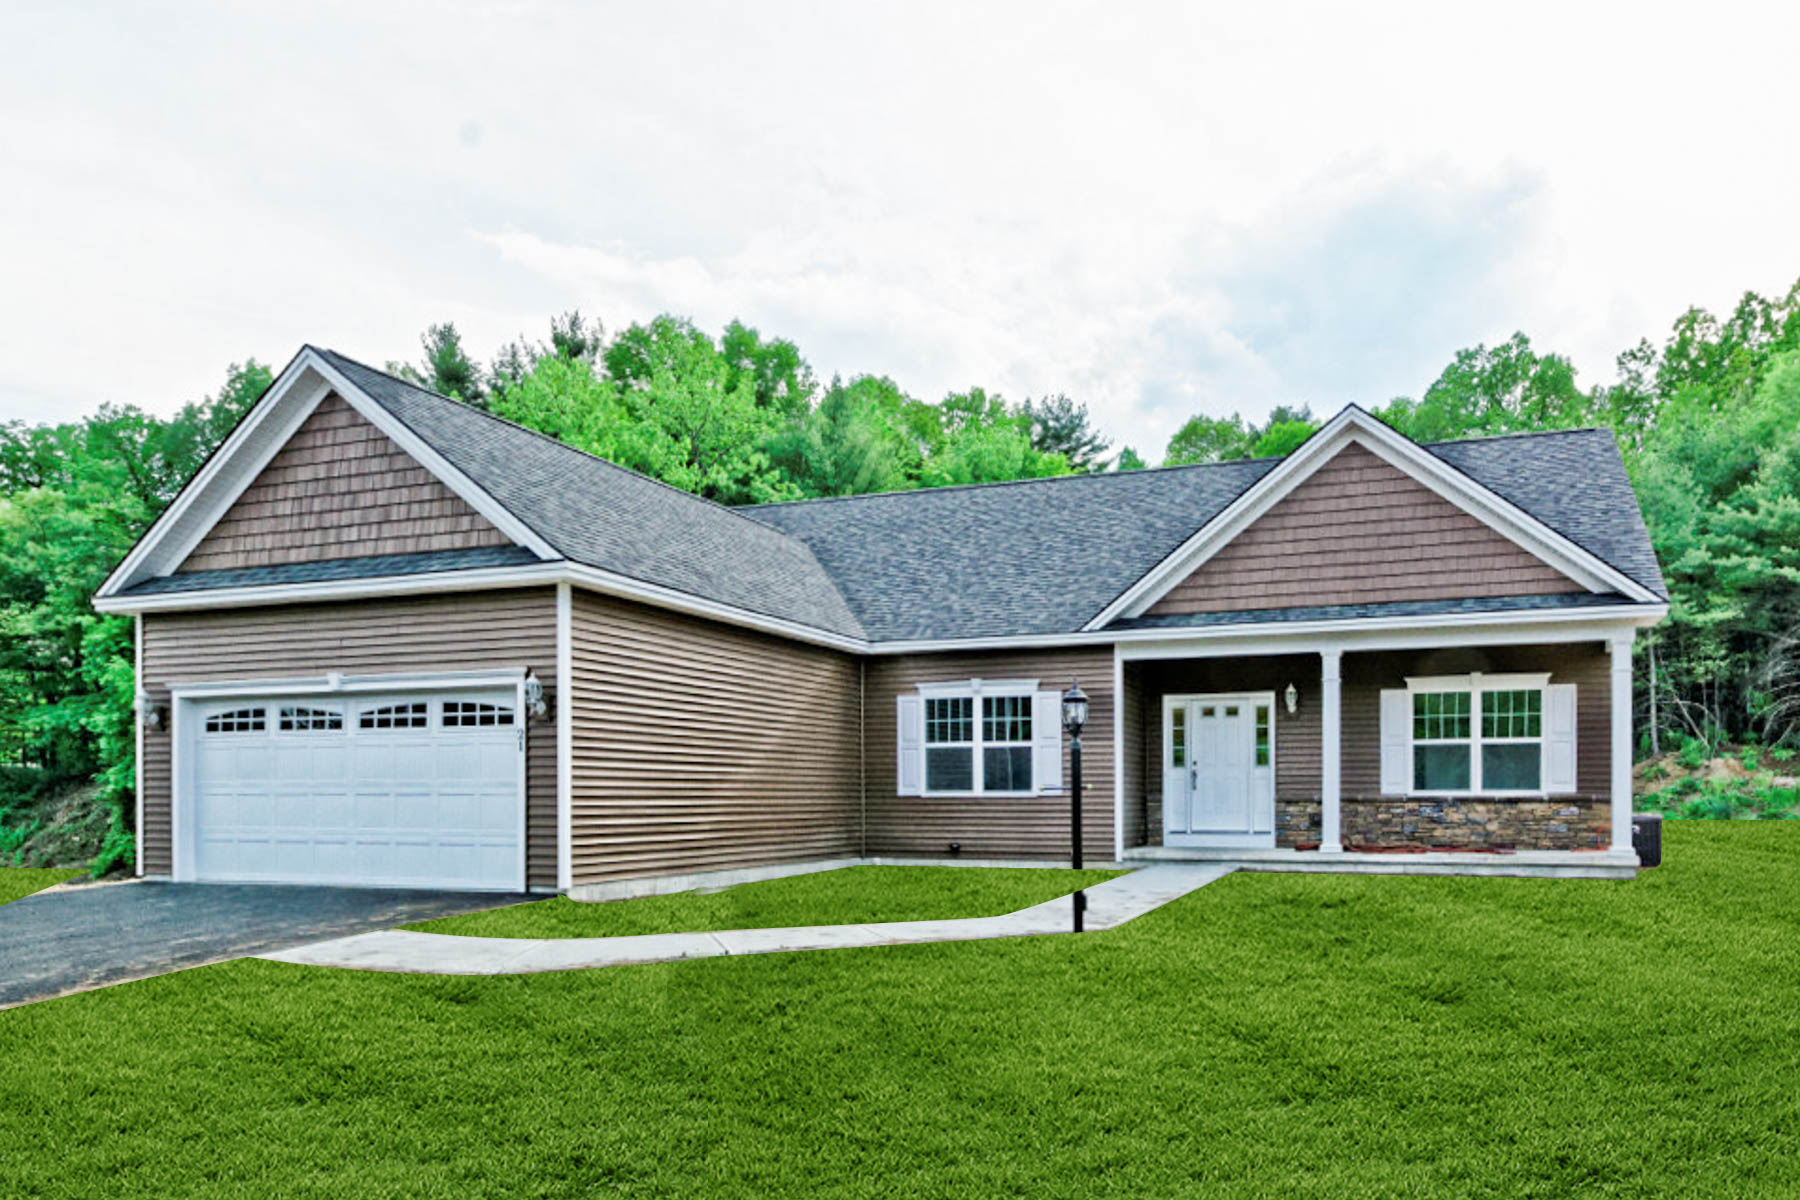 Single Family Home for Sale at Build Your Dream Home in Schuyler Hills! Lot 22 Schuyler Hills Dr, Saratoga Springs, New York, 12866 United States